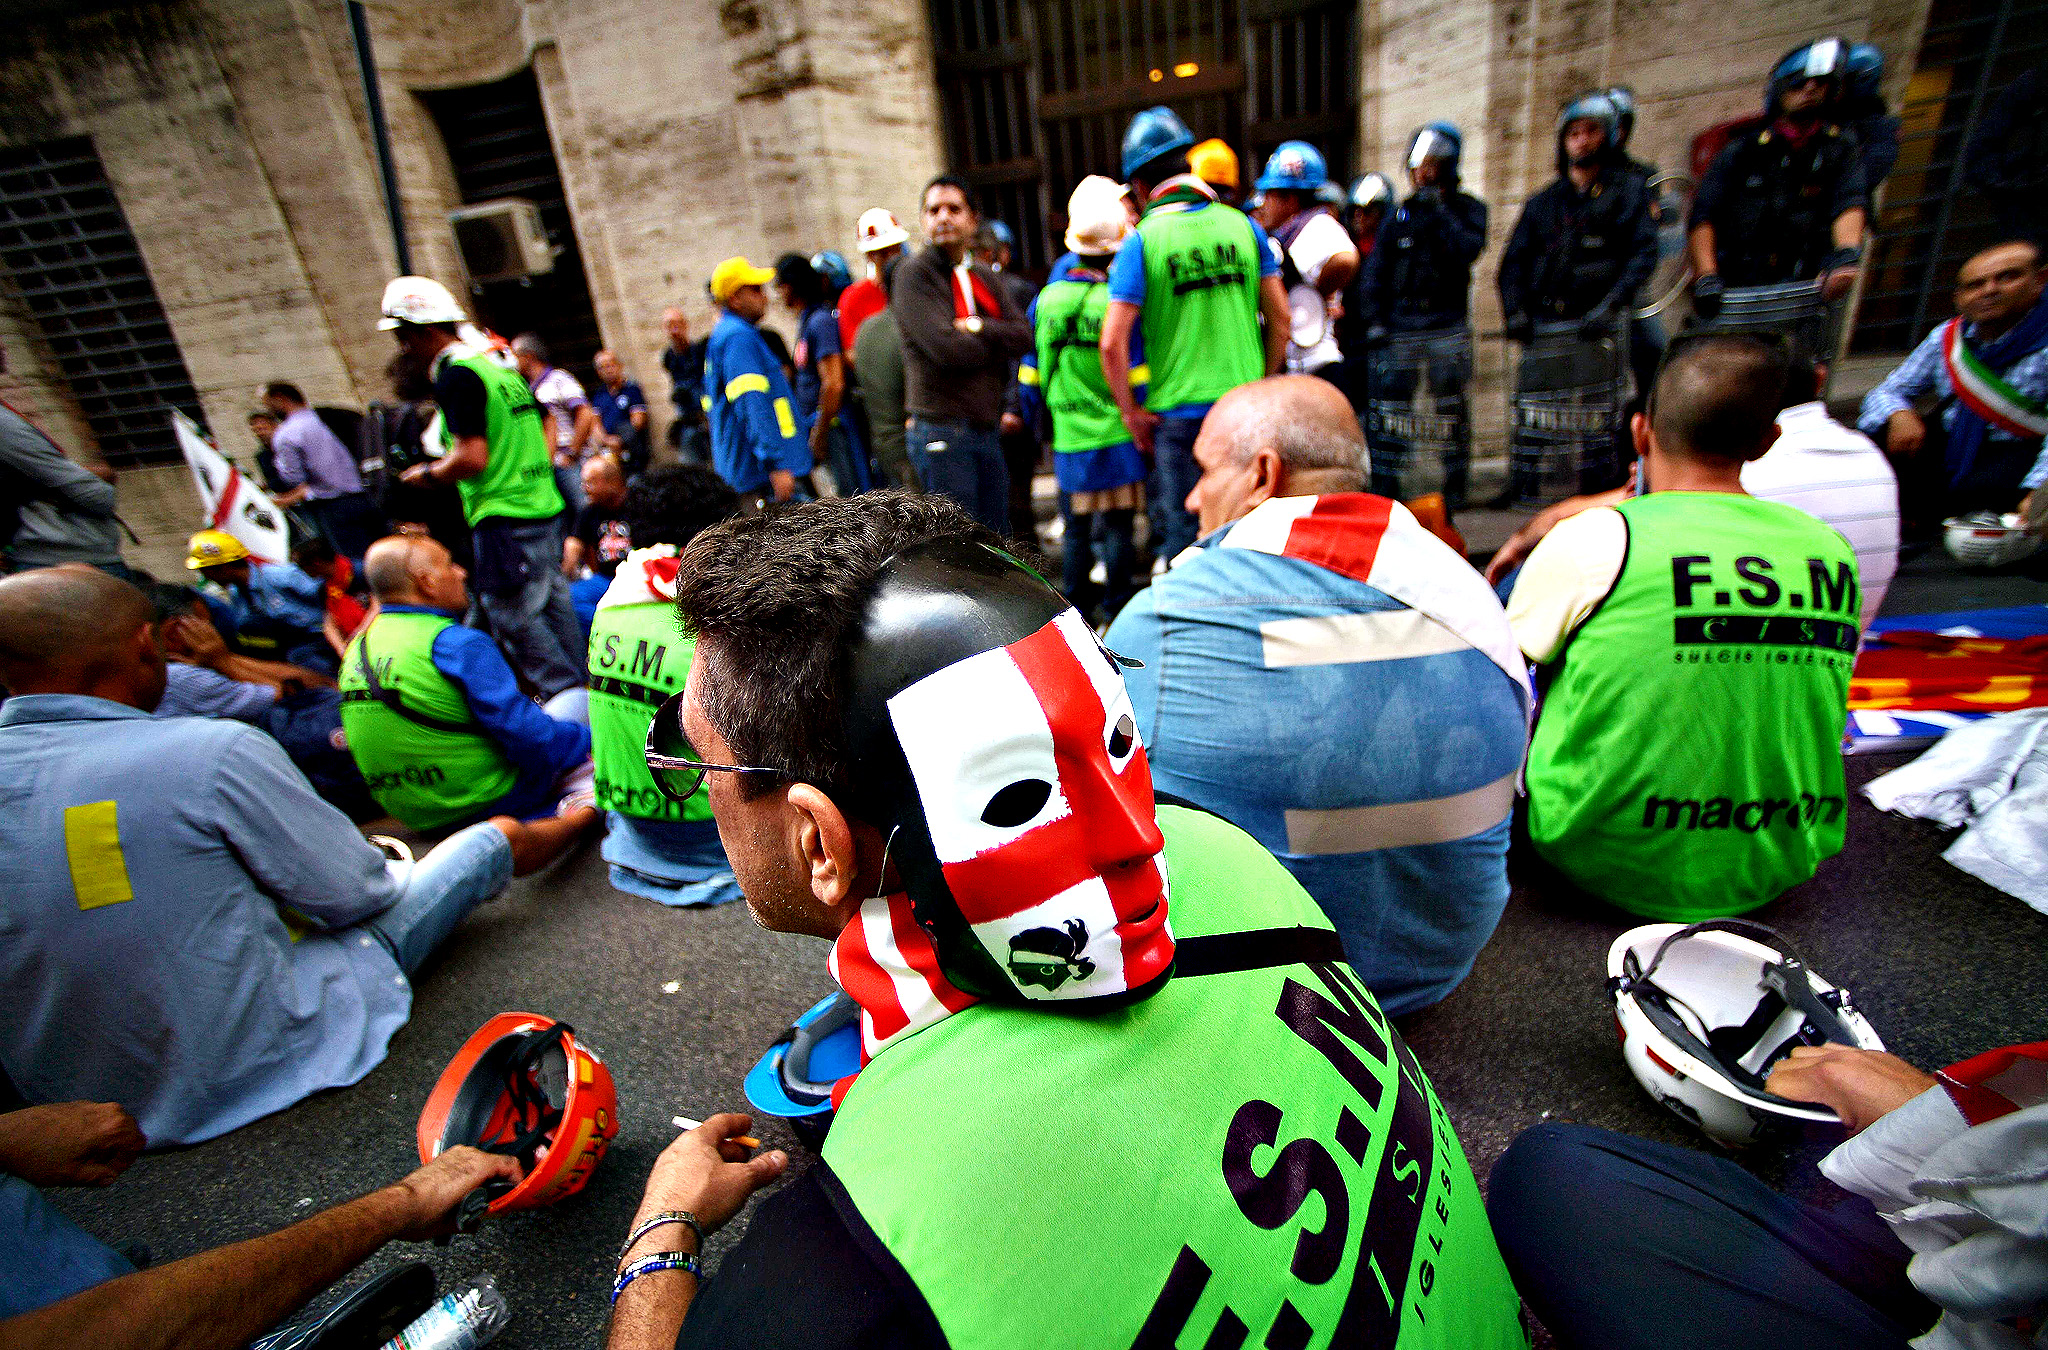 Employees of American aluminum producer giant Alcoa take part in a sit-in outside the Italian Industry Ministry in Rome on Monday, as they demonstrate against the closing of the Portovesme and Fusina melting plants located on the Italian mediterranean island of Sardinia, which employ around 2,000 people.